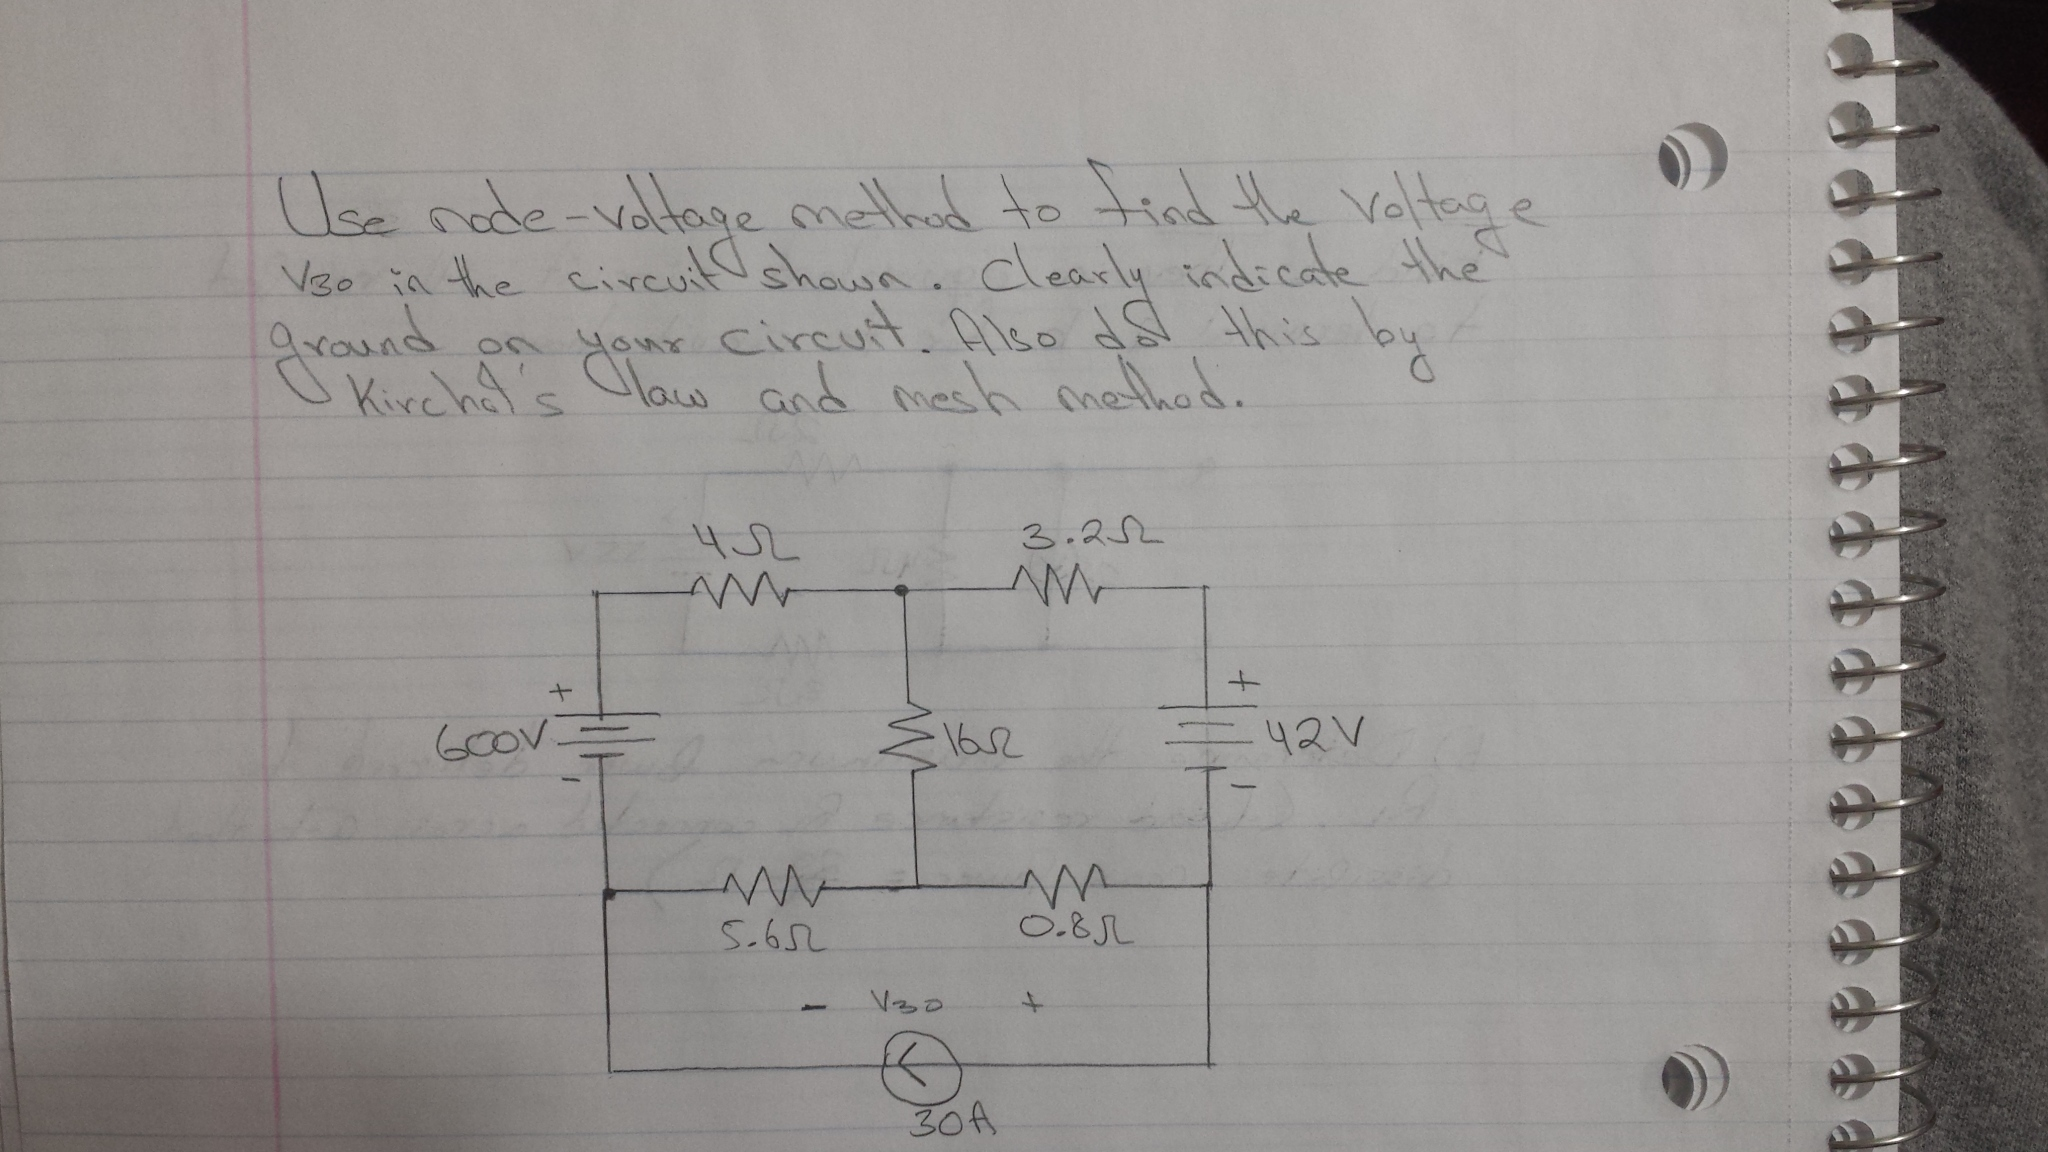 Use node - voltage method to find the voltage V30